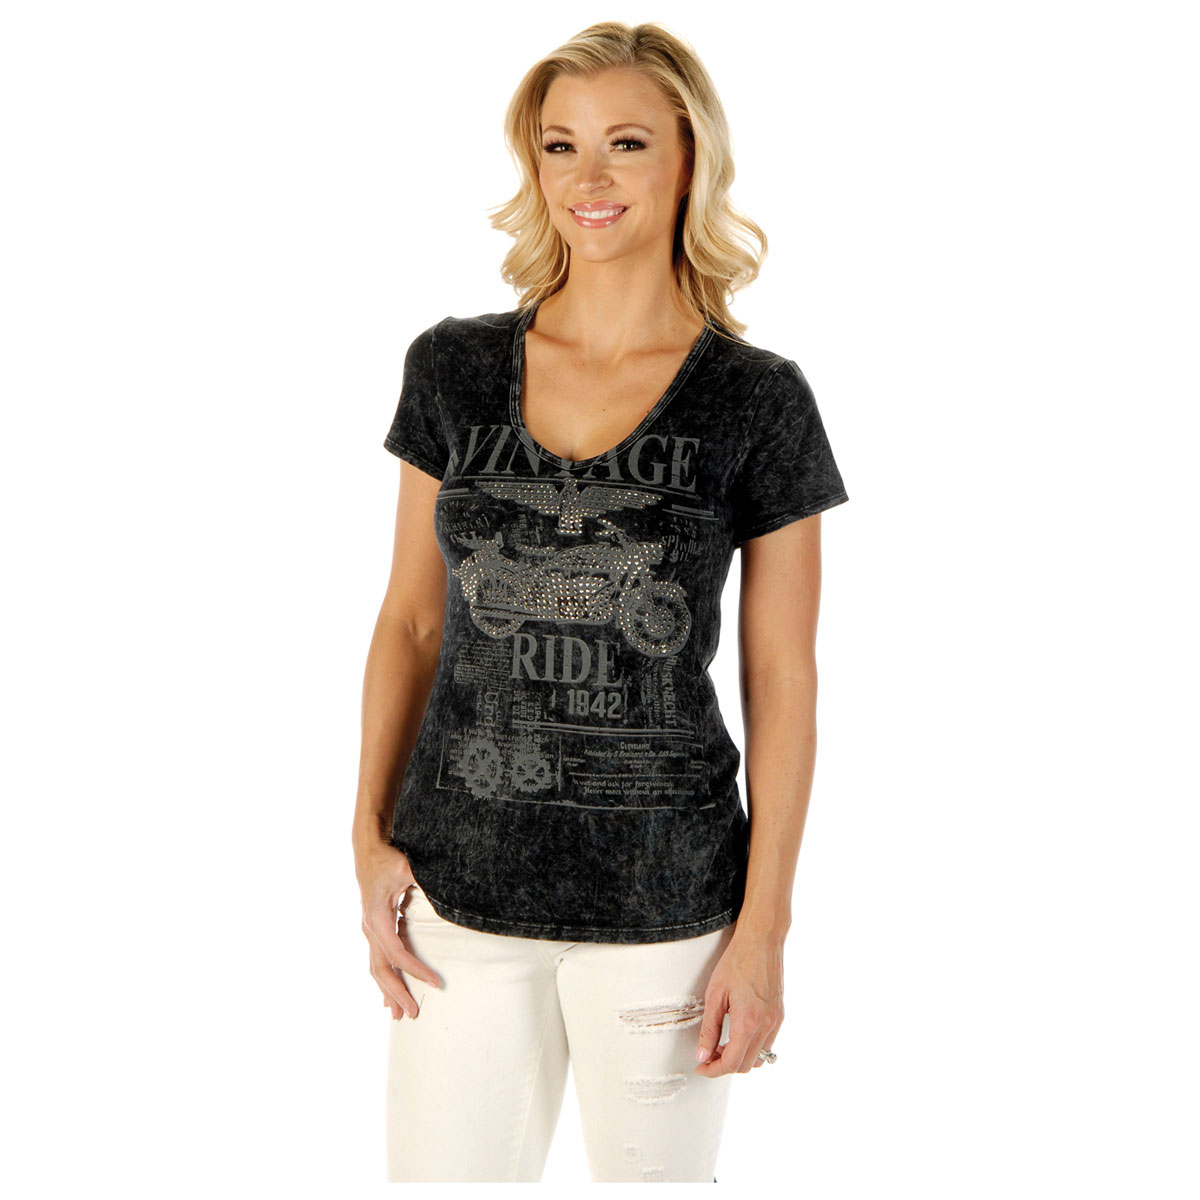 Liberty Wear Women's Vintage Ride Gray Tee